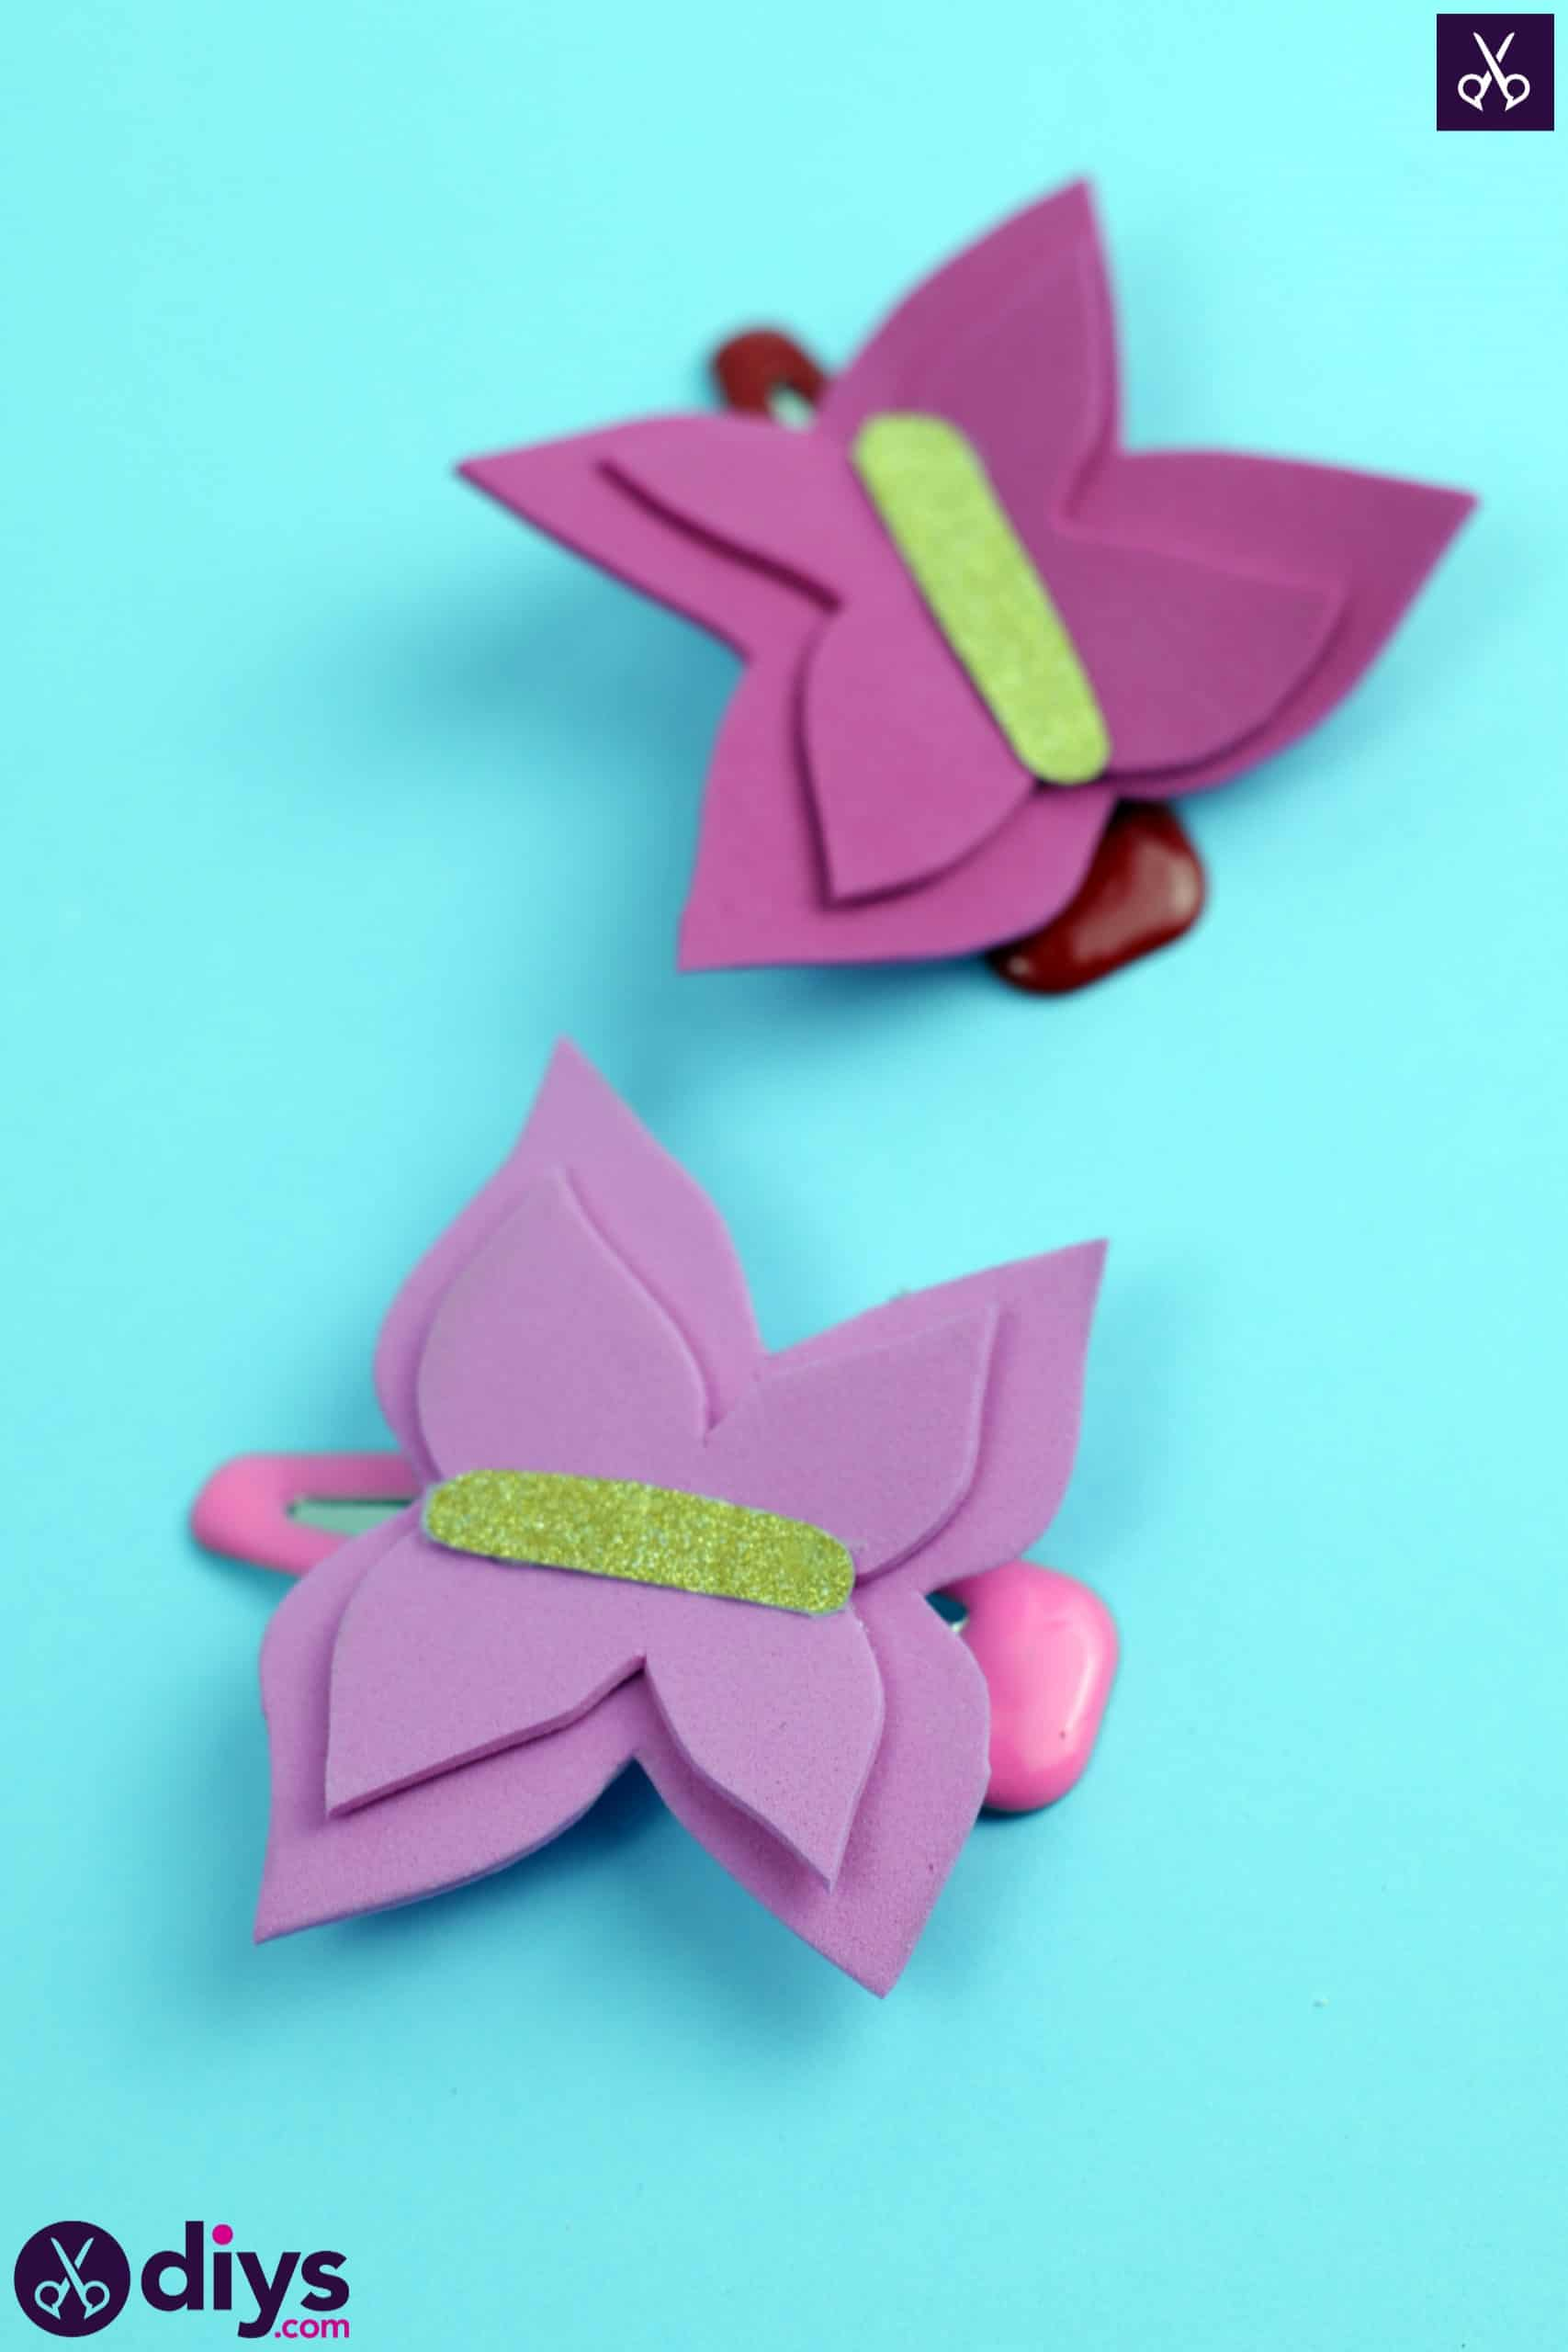 Diy butterfly barrette pink color